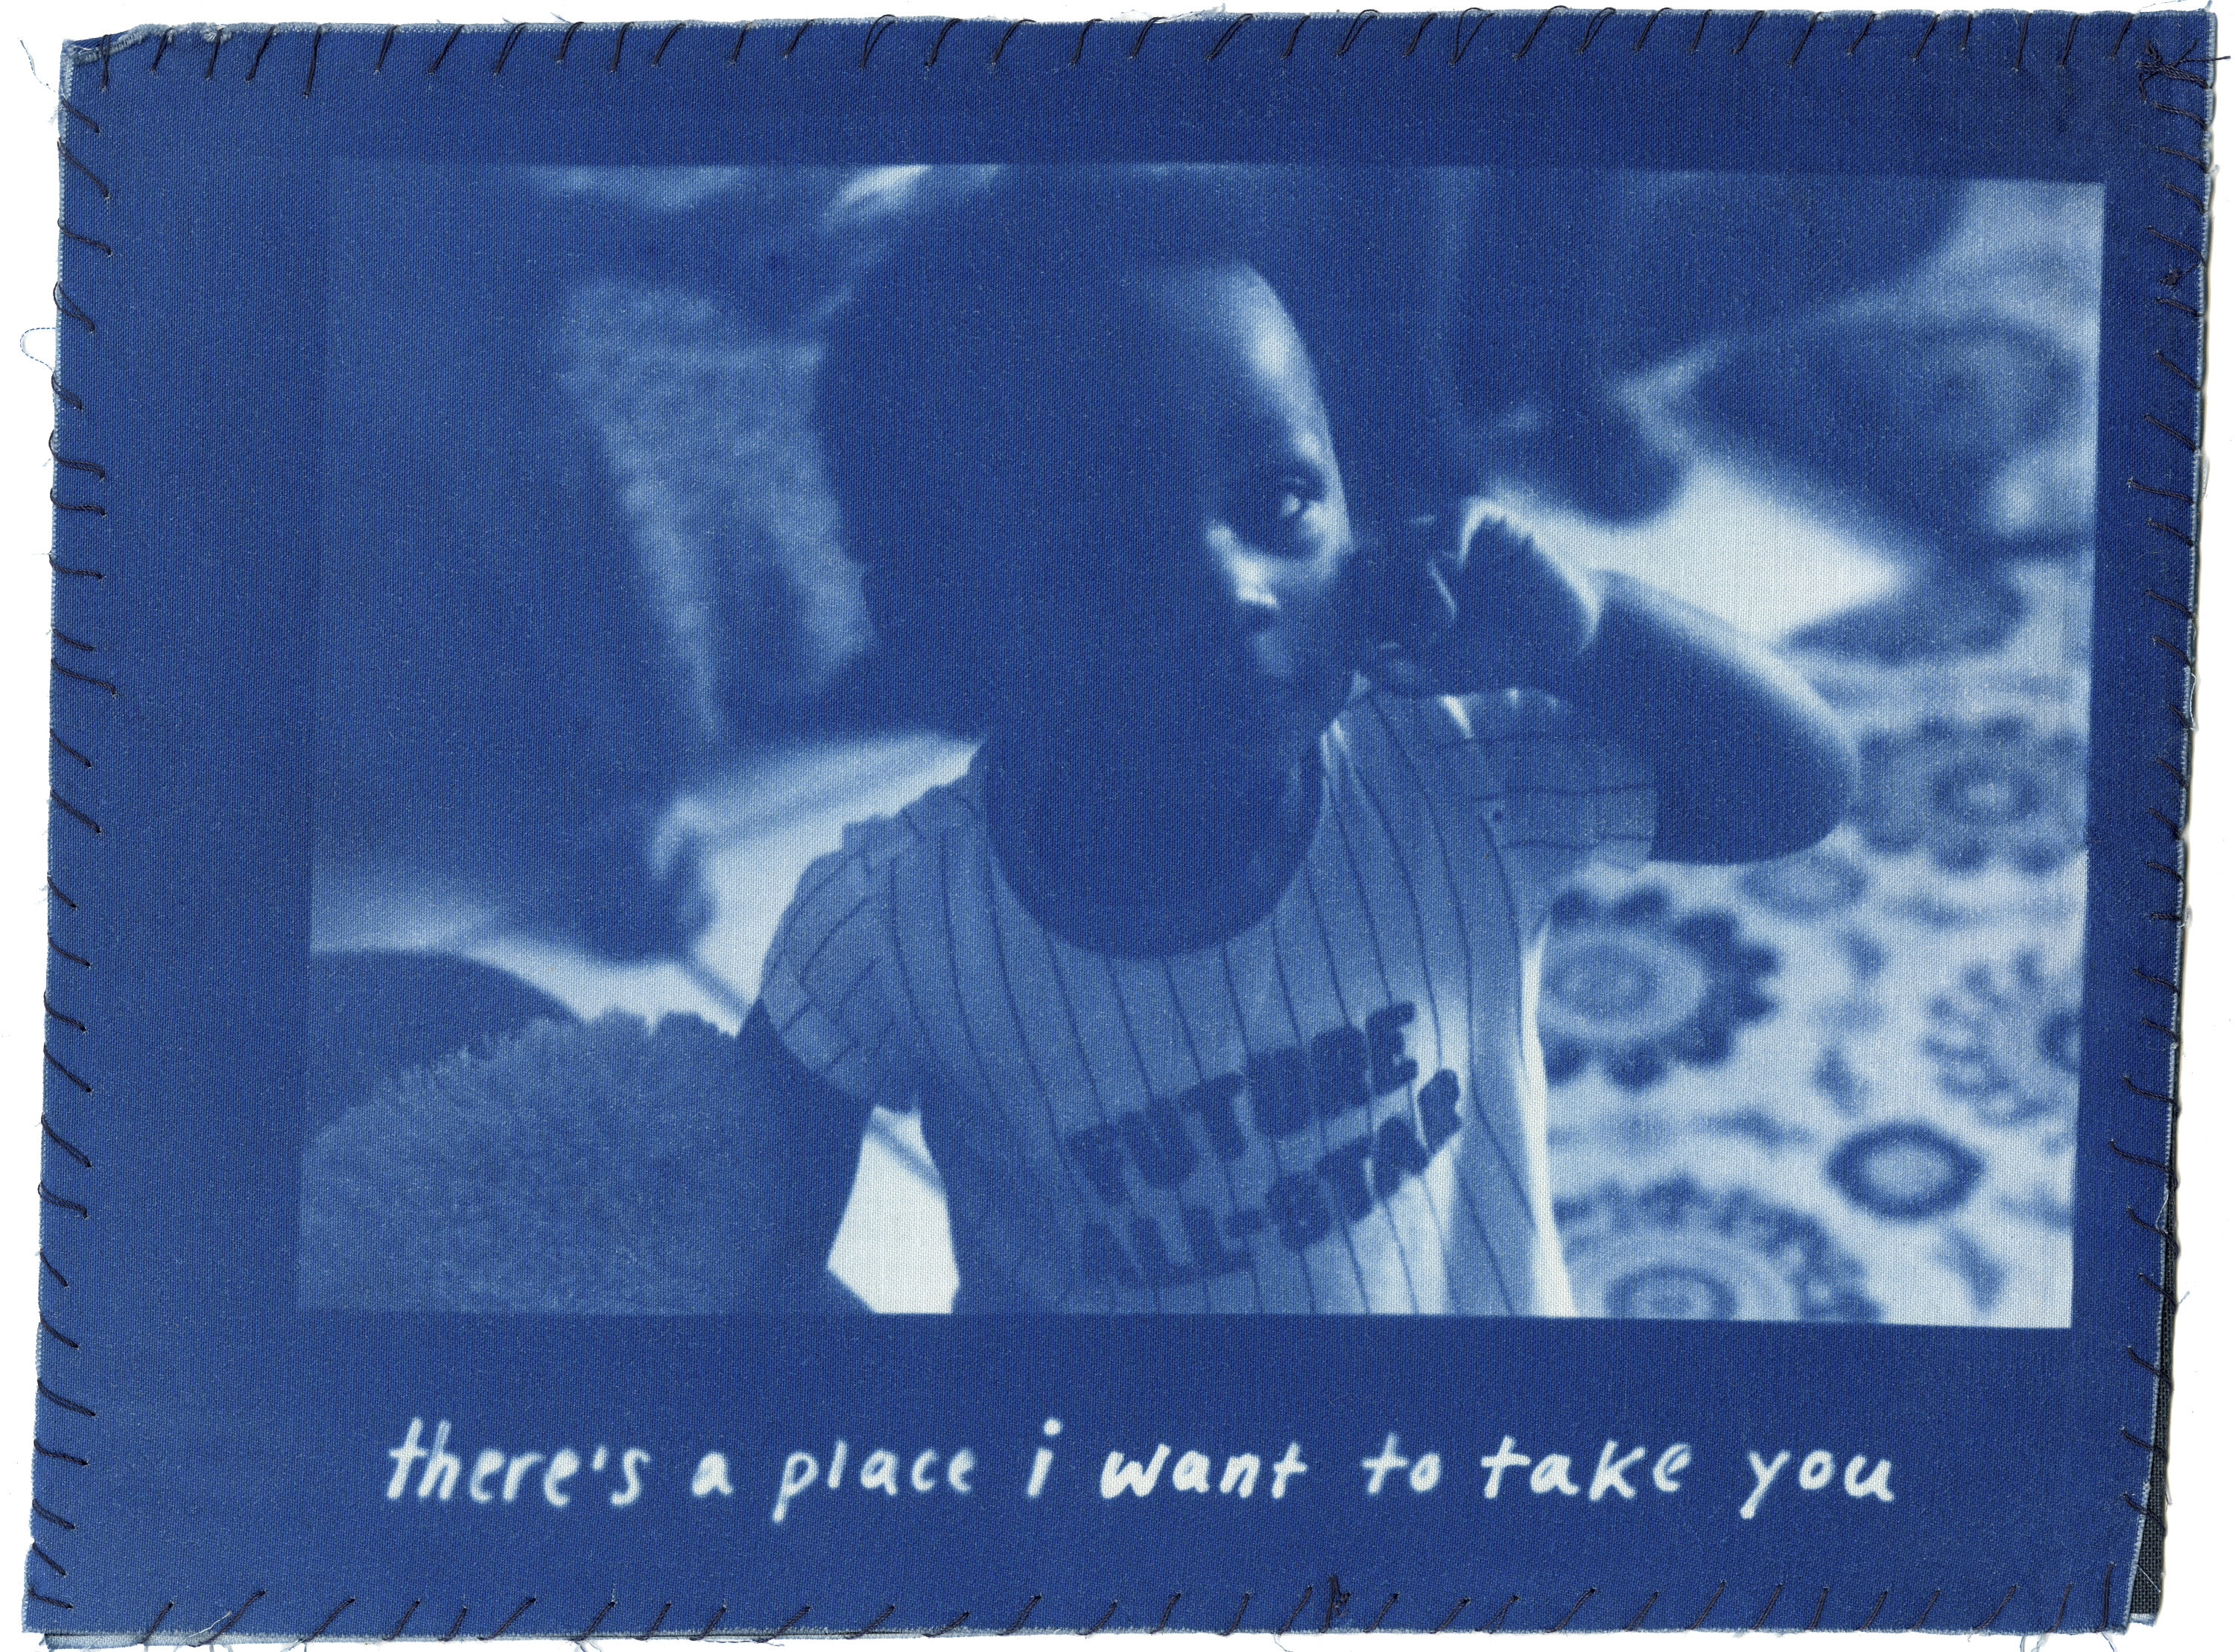 """A photo collage of a young boy with text underneath that says """"there's a place i want to take you"""""""